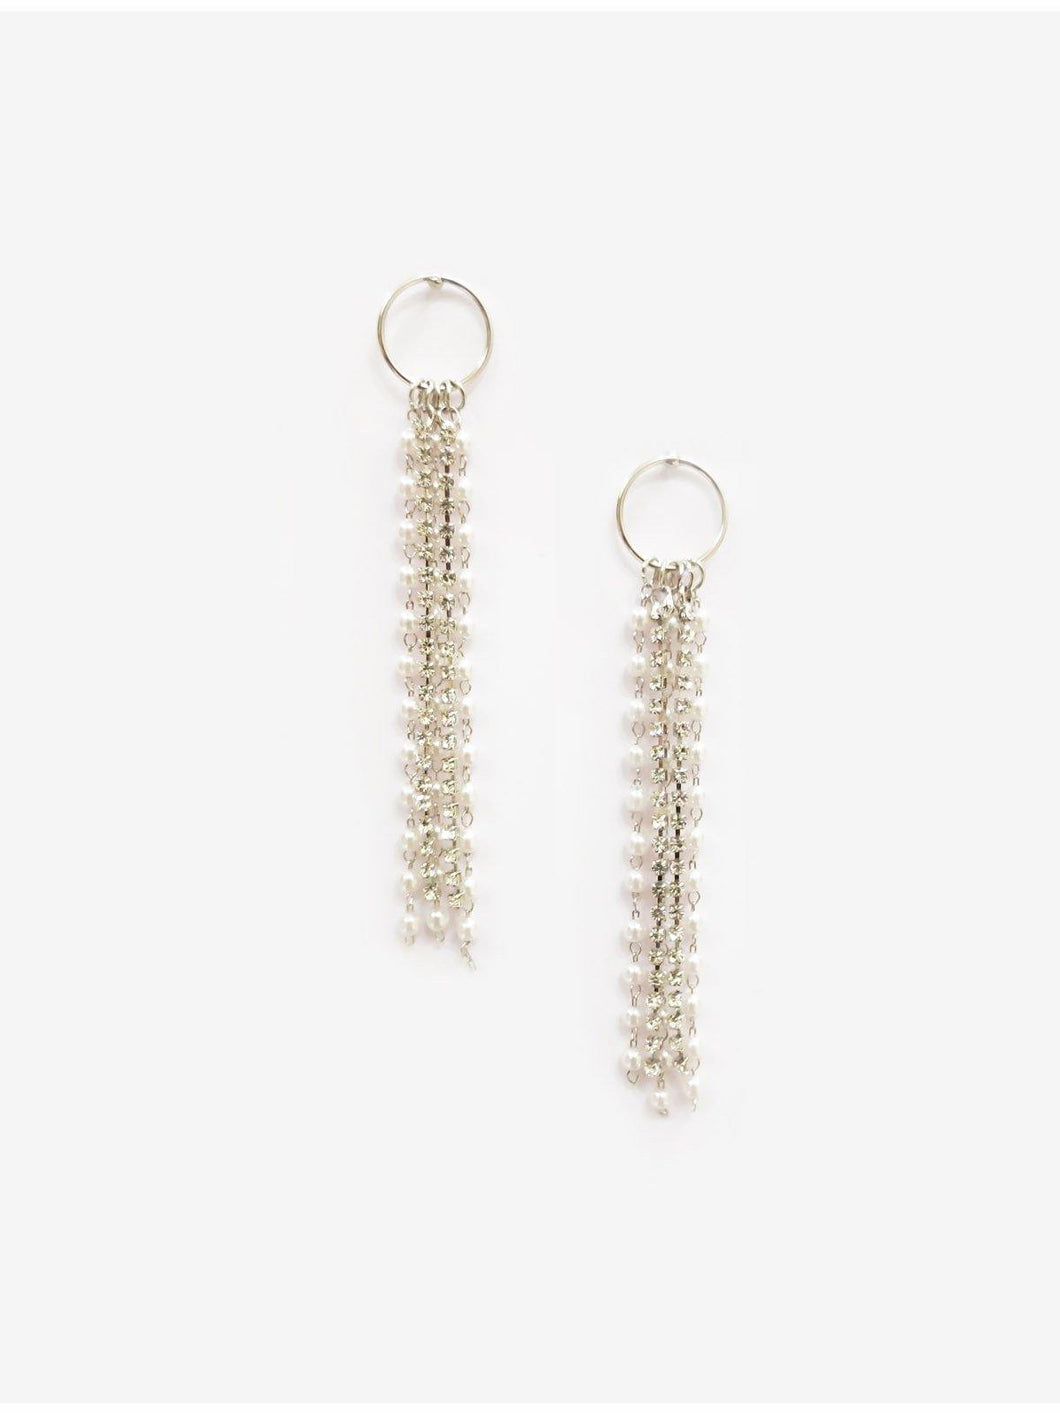 Silver Tassel Earrings - The Wedding Brigade